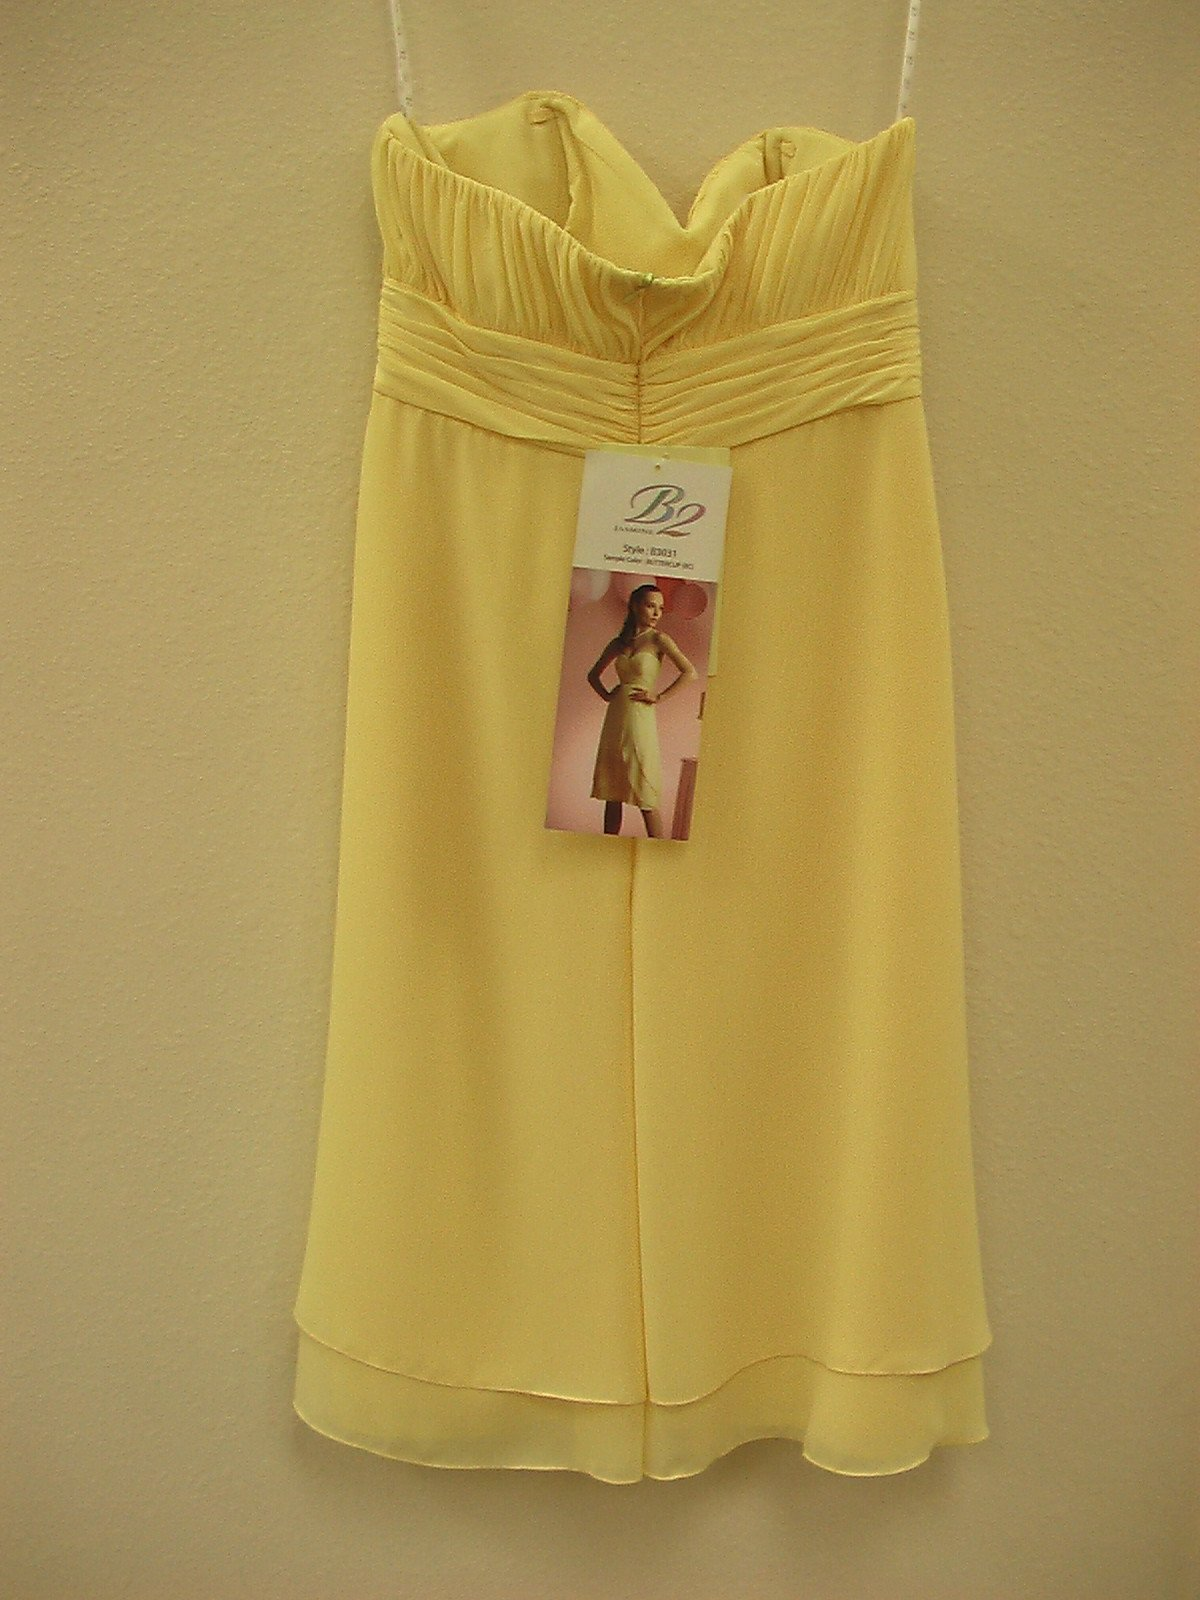 Jasmine B2 B3031 Buttercup size 12 In Stock Bridesmaid Dress - Tom's Bridal